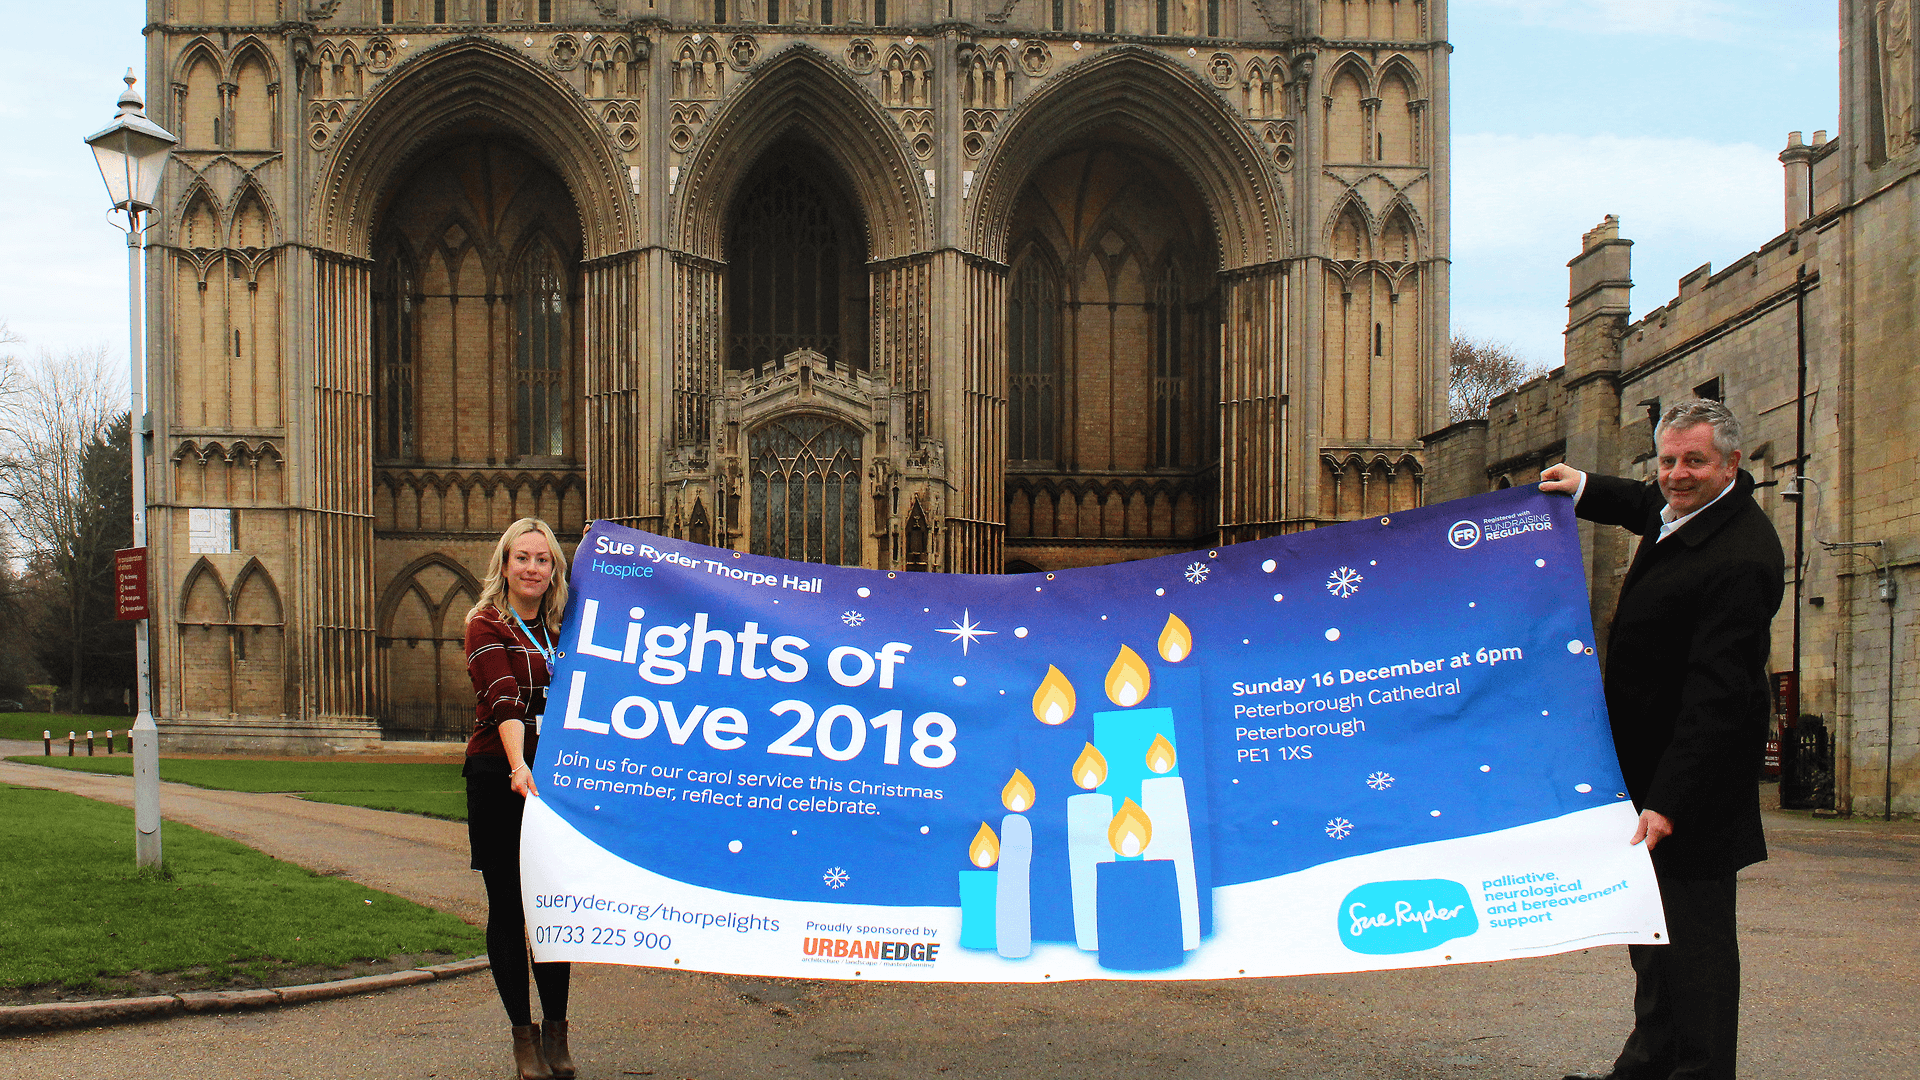 Sue Ryder Thorpe Hall Hospice - Lights of Love 2018